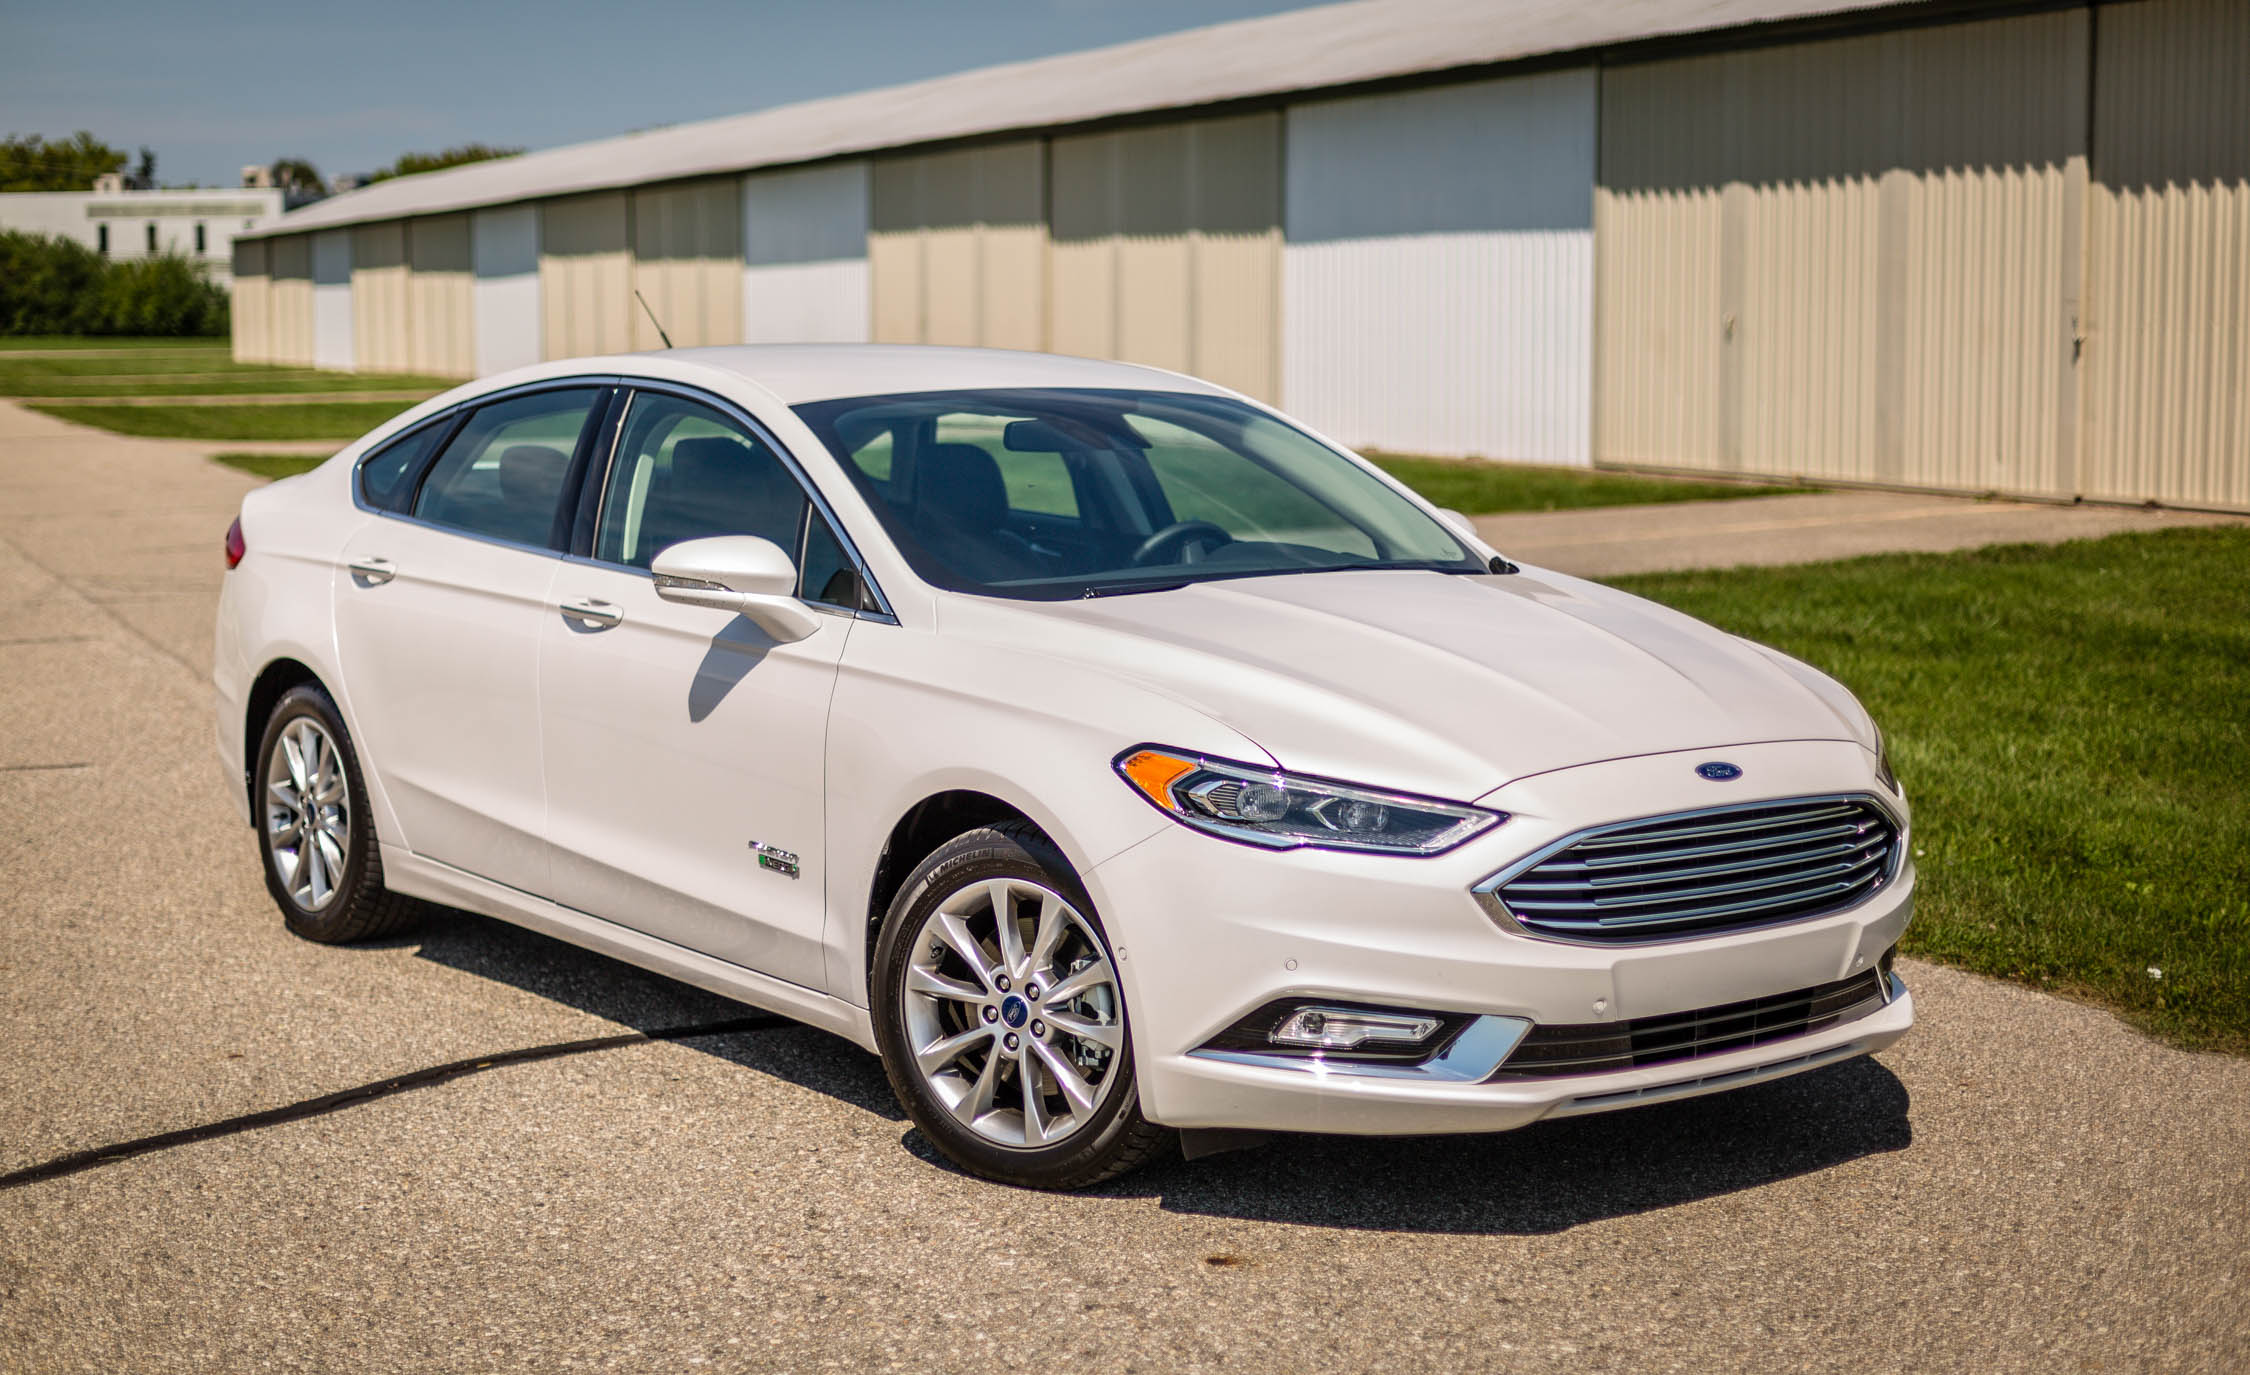 2017 Ford Fusion Energi Pictures Gallery (19 Images)